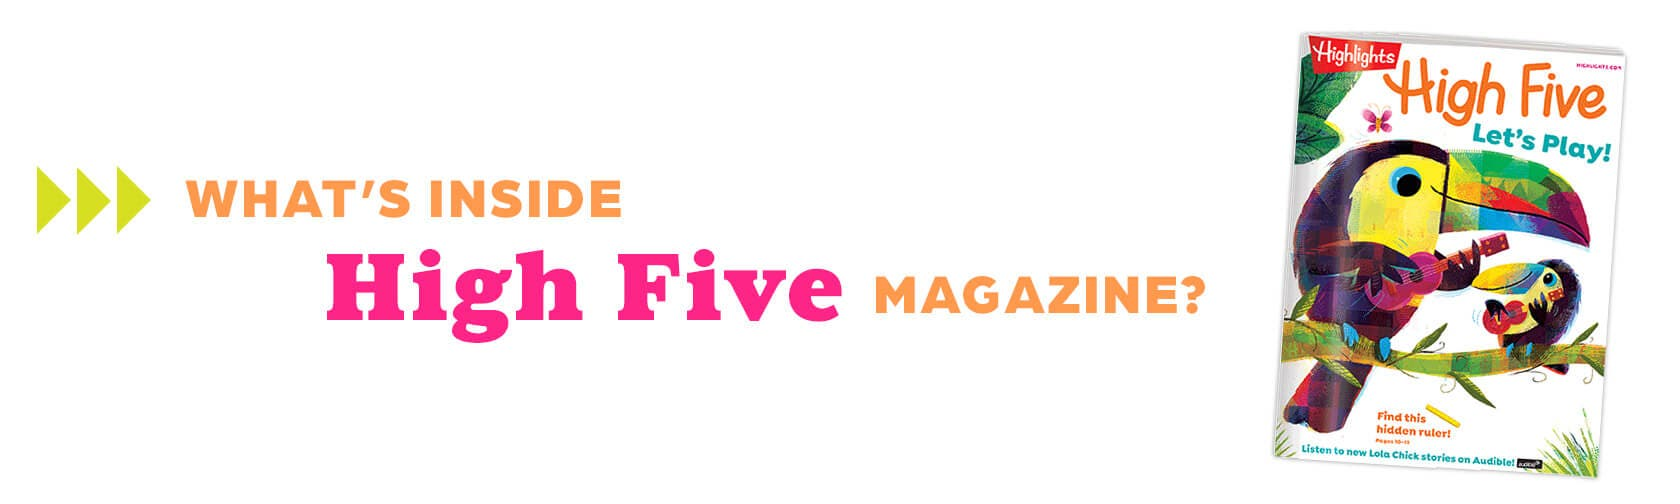 What's inside High Five magazine?